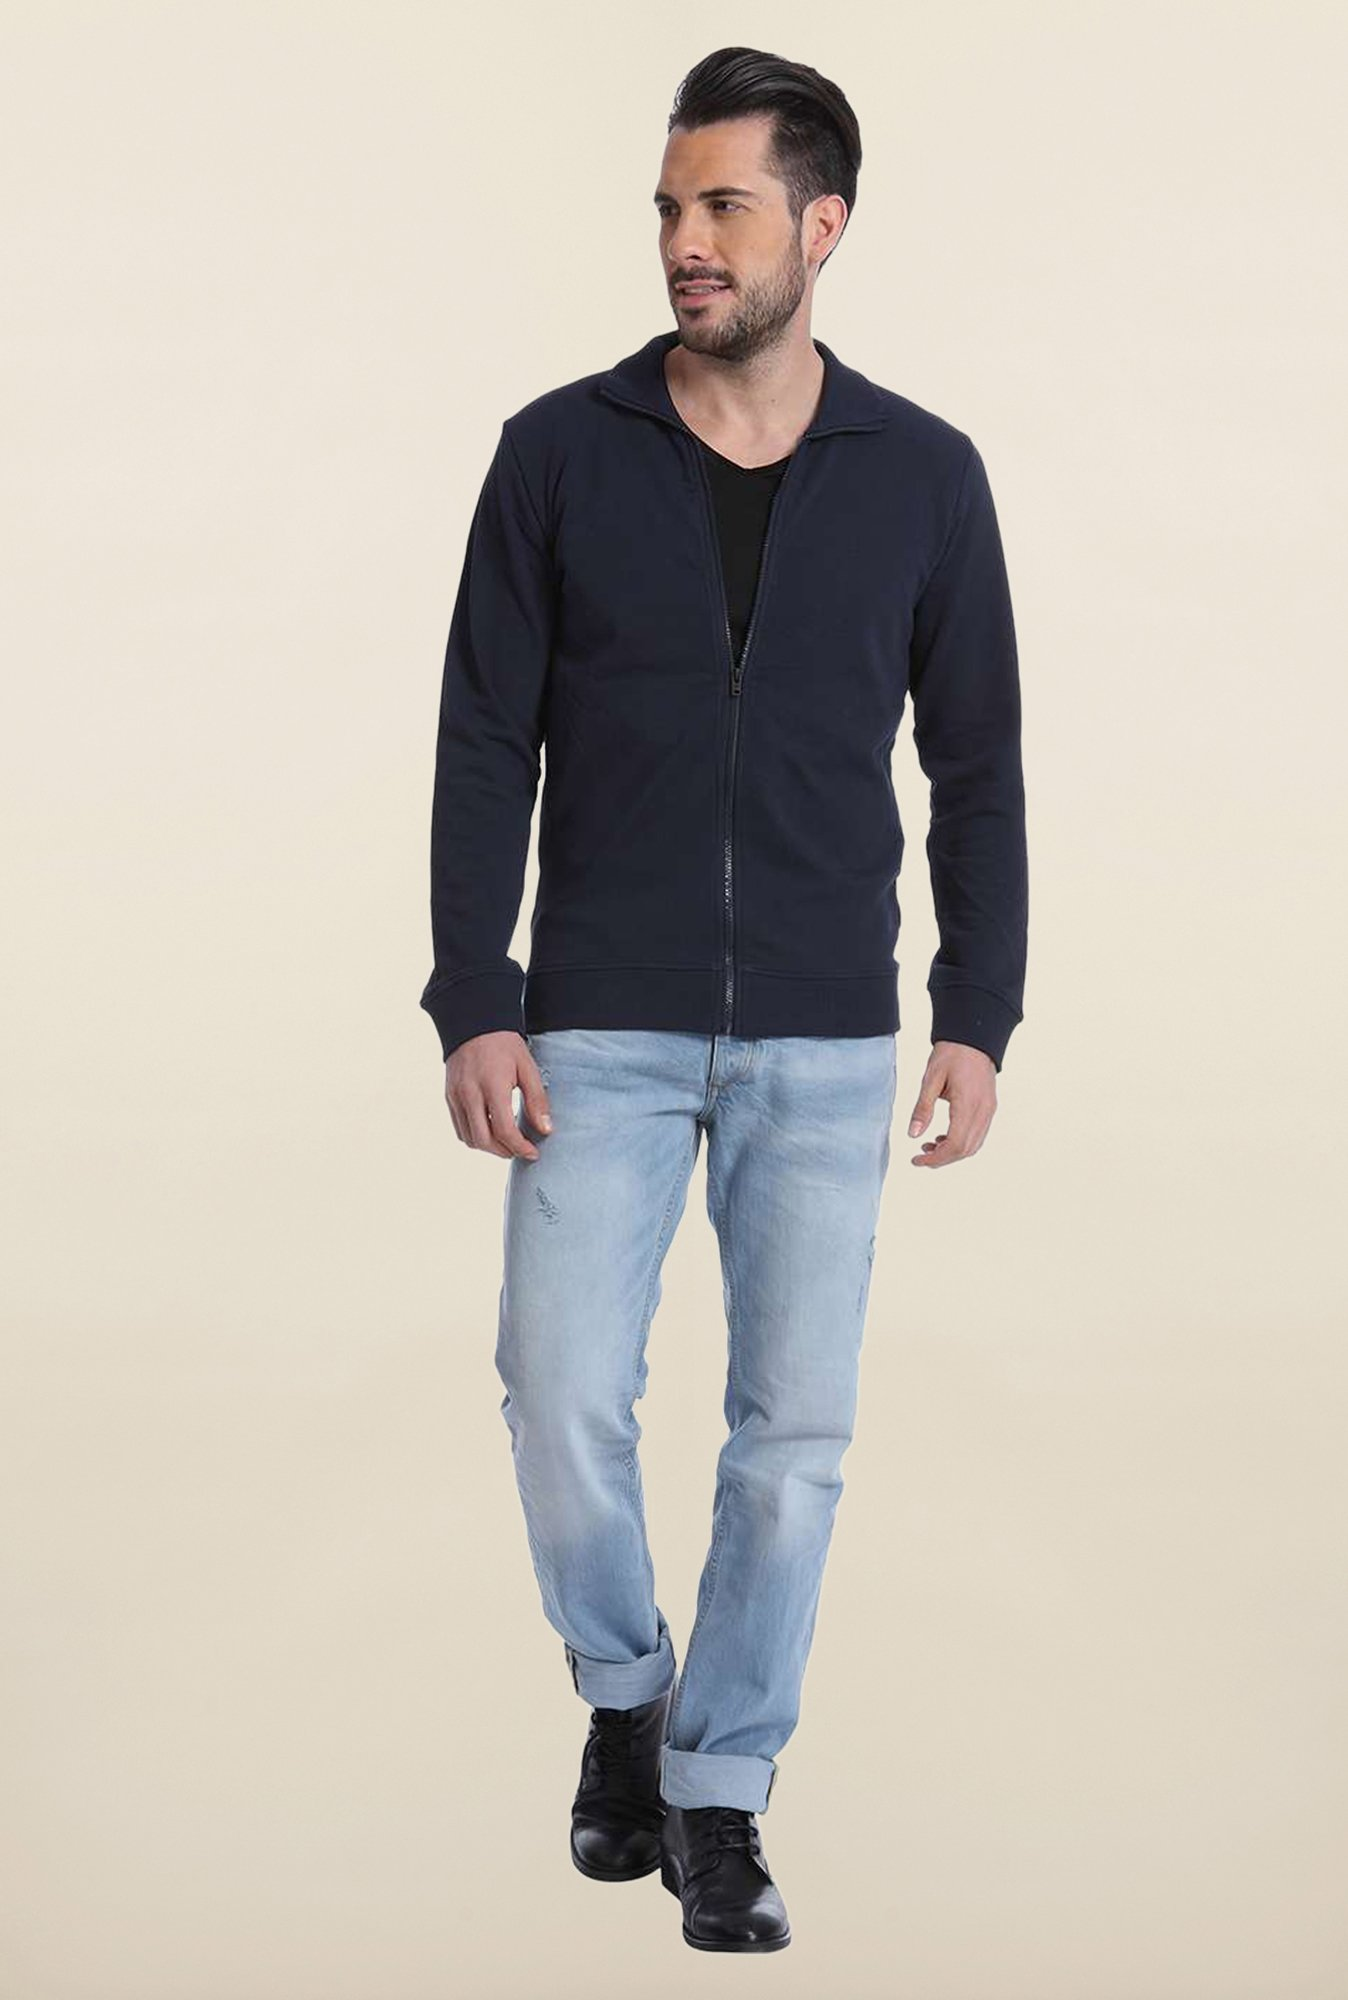 Jack & Jones Navy Solid Sweatshirt